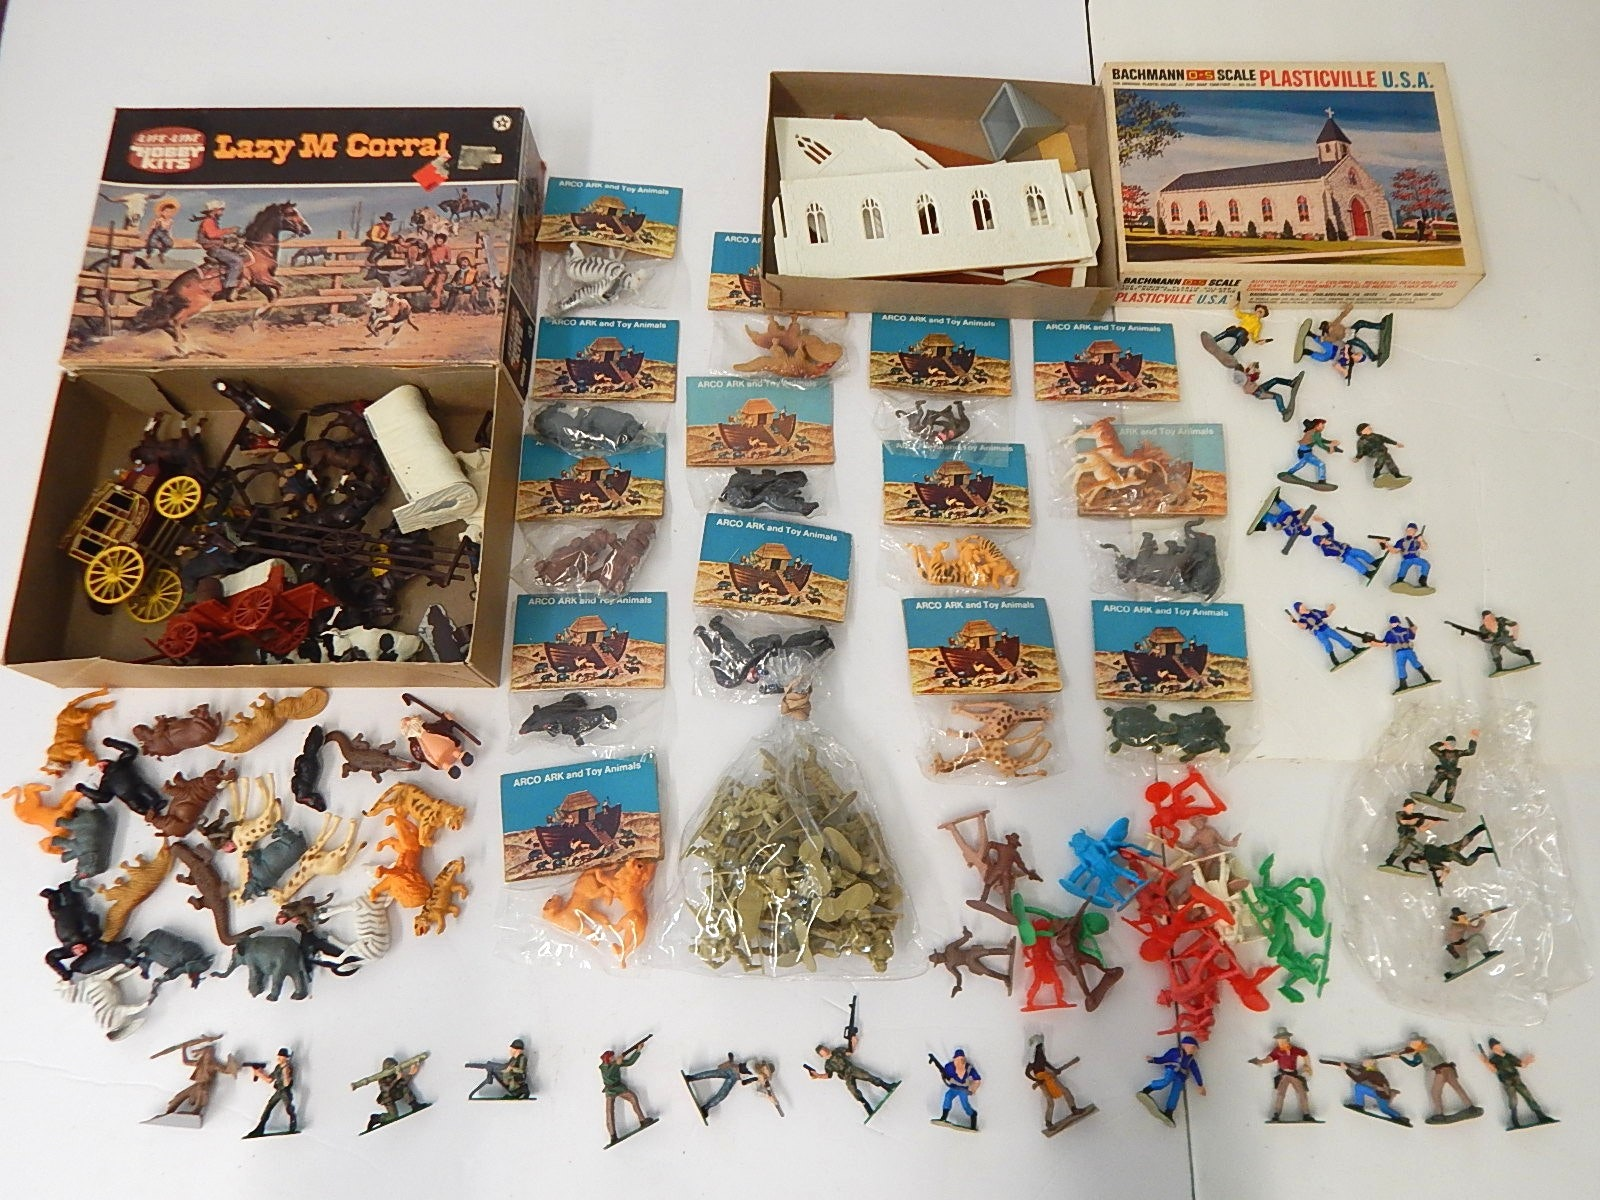 Vintage O-Gauge Train Model Kits and Figures - Some Hand-Painted